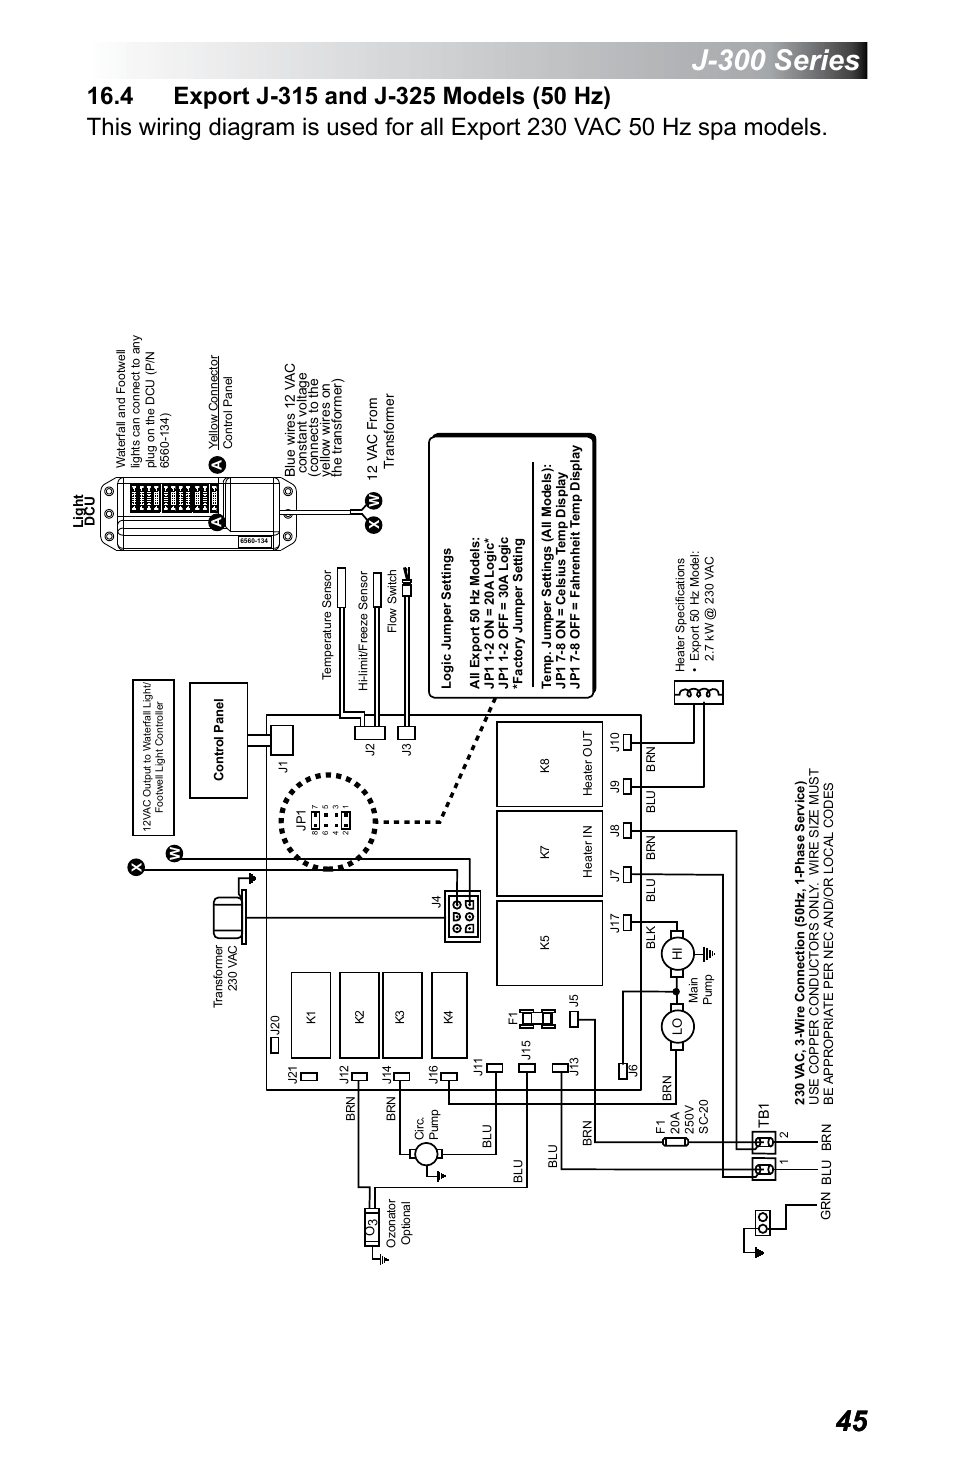 medium resolution of jacuzzi light wiring diagram wiring diagrams spy 4 export j 315 and j 325 models